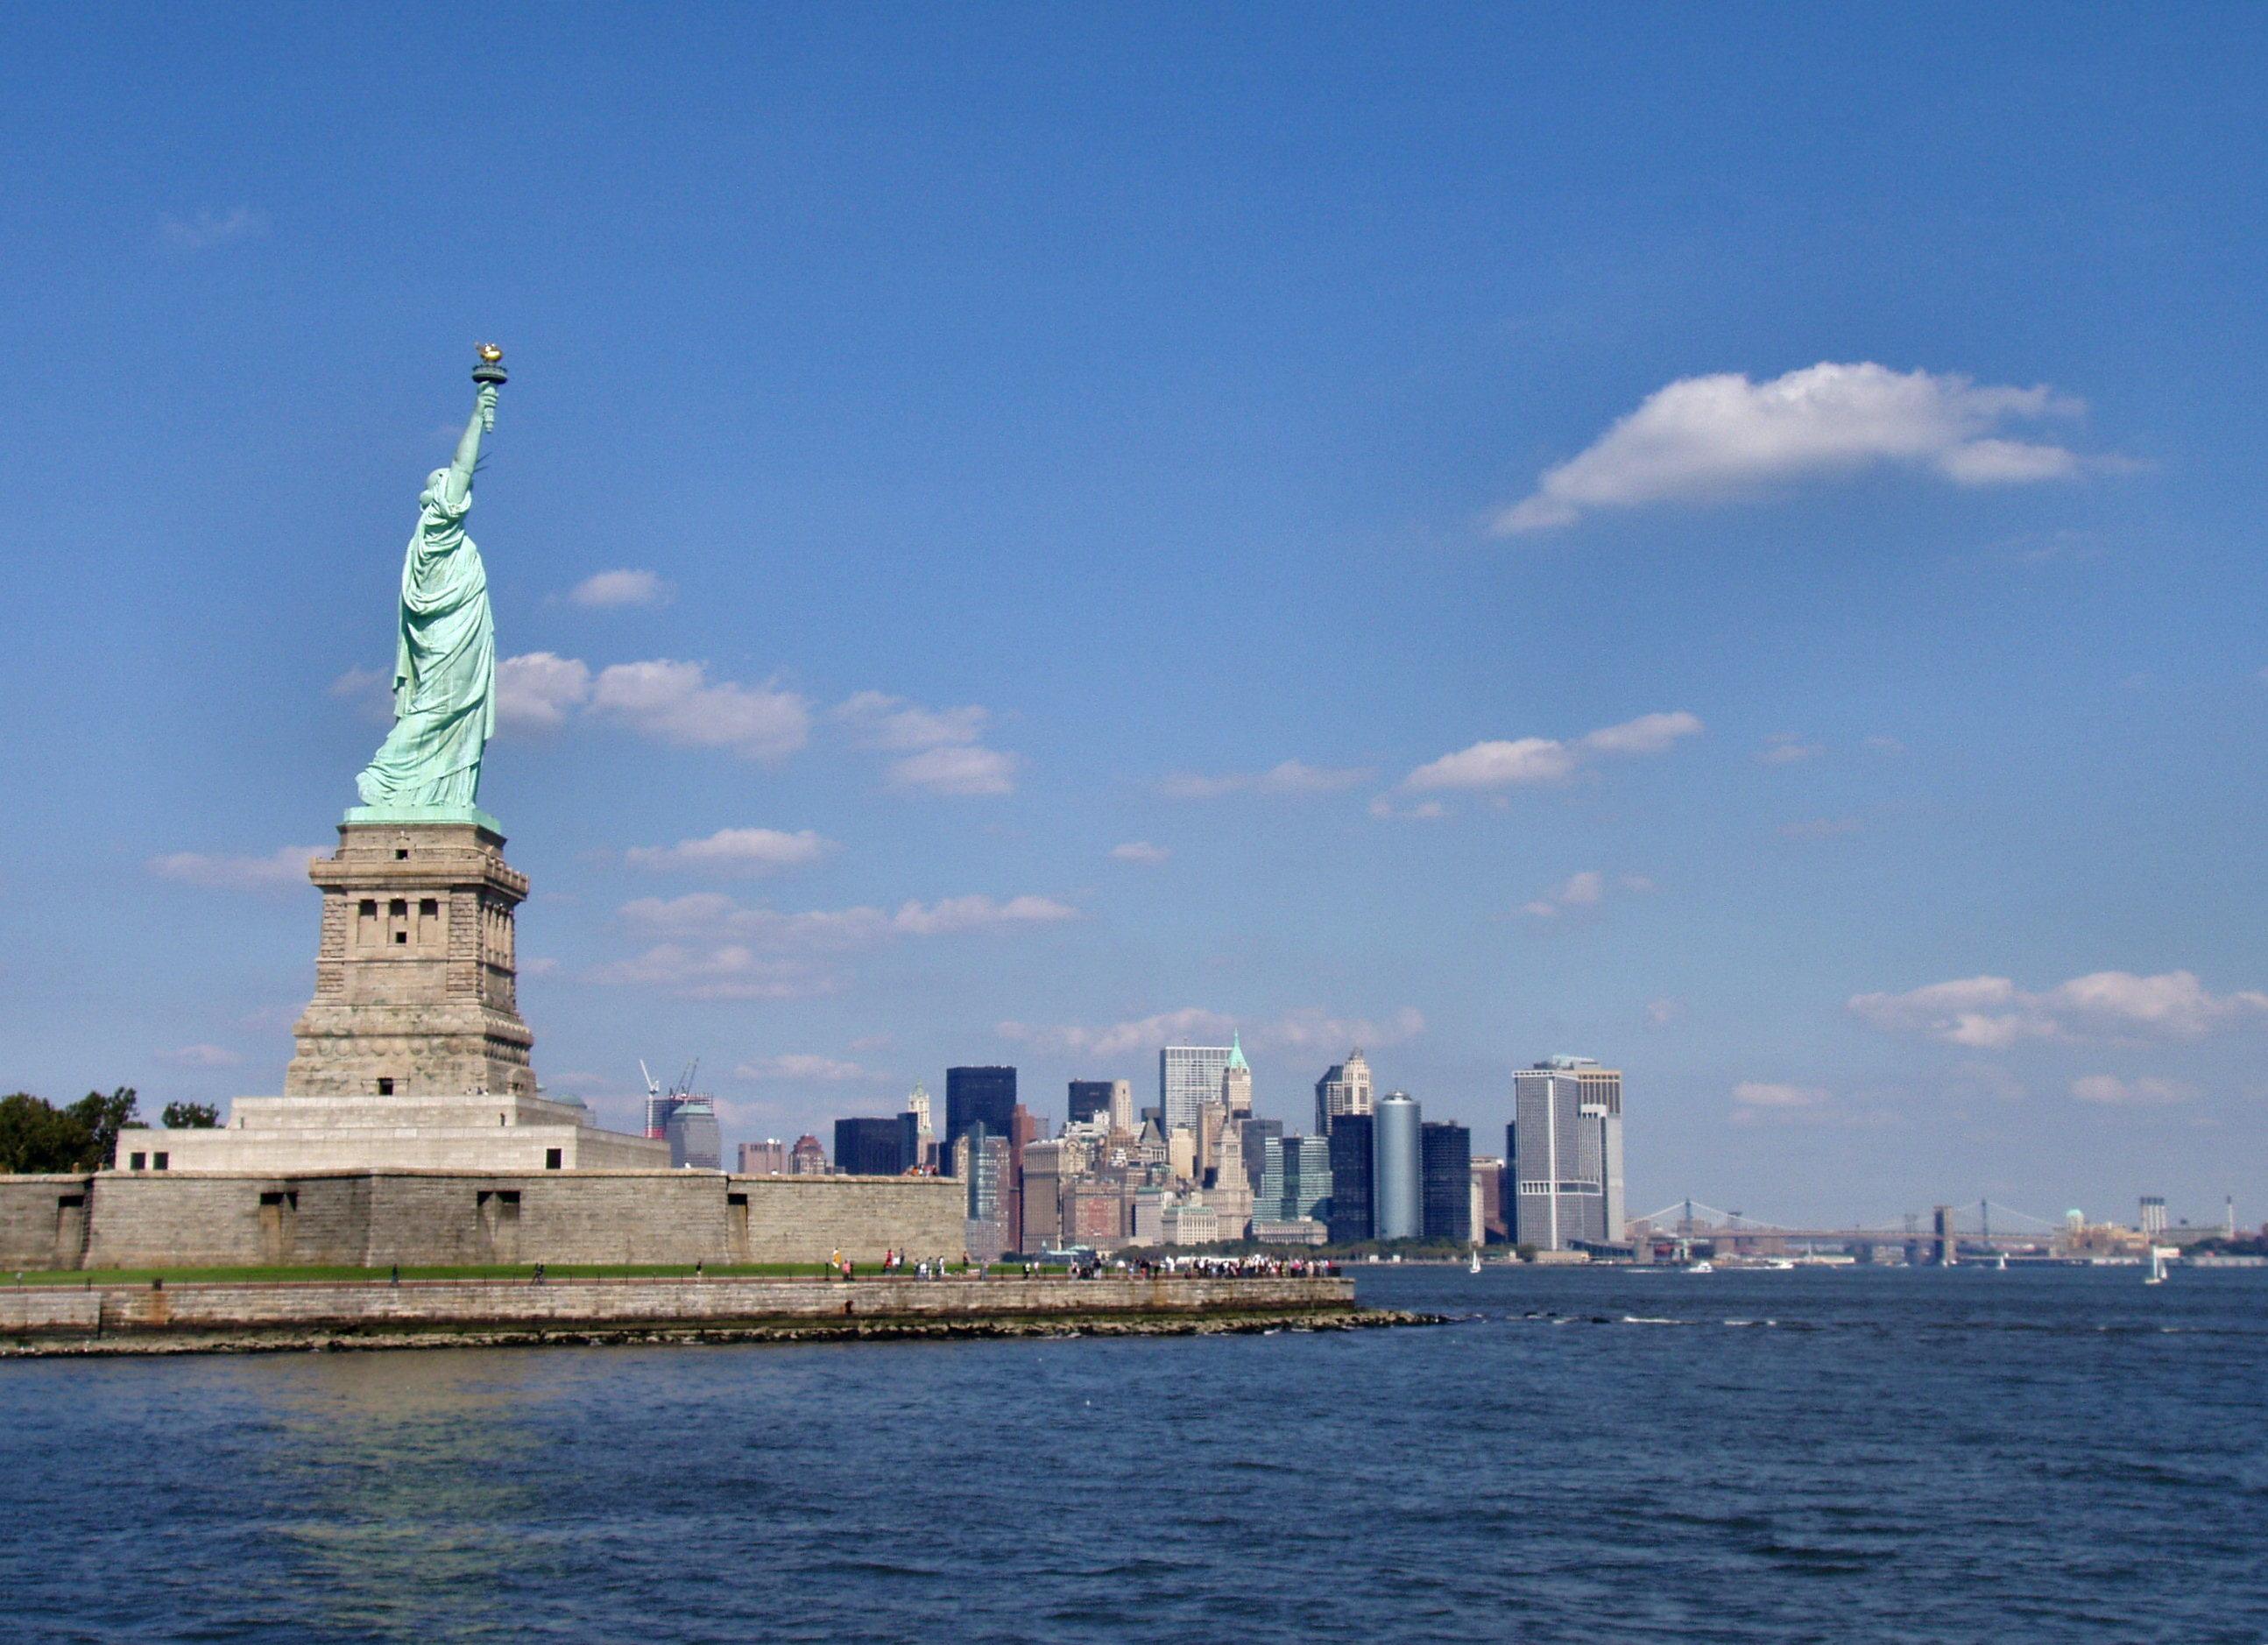 http://upload.wikimedia.org/wikipedia/commons/e/e4/Liberty-statue-with-manhattan.jpg